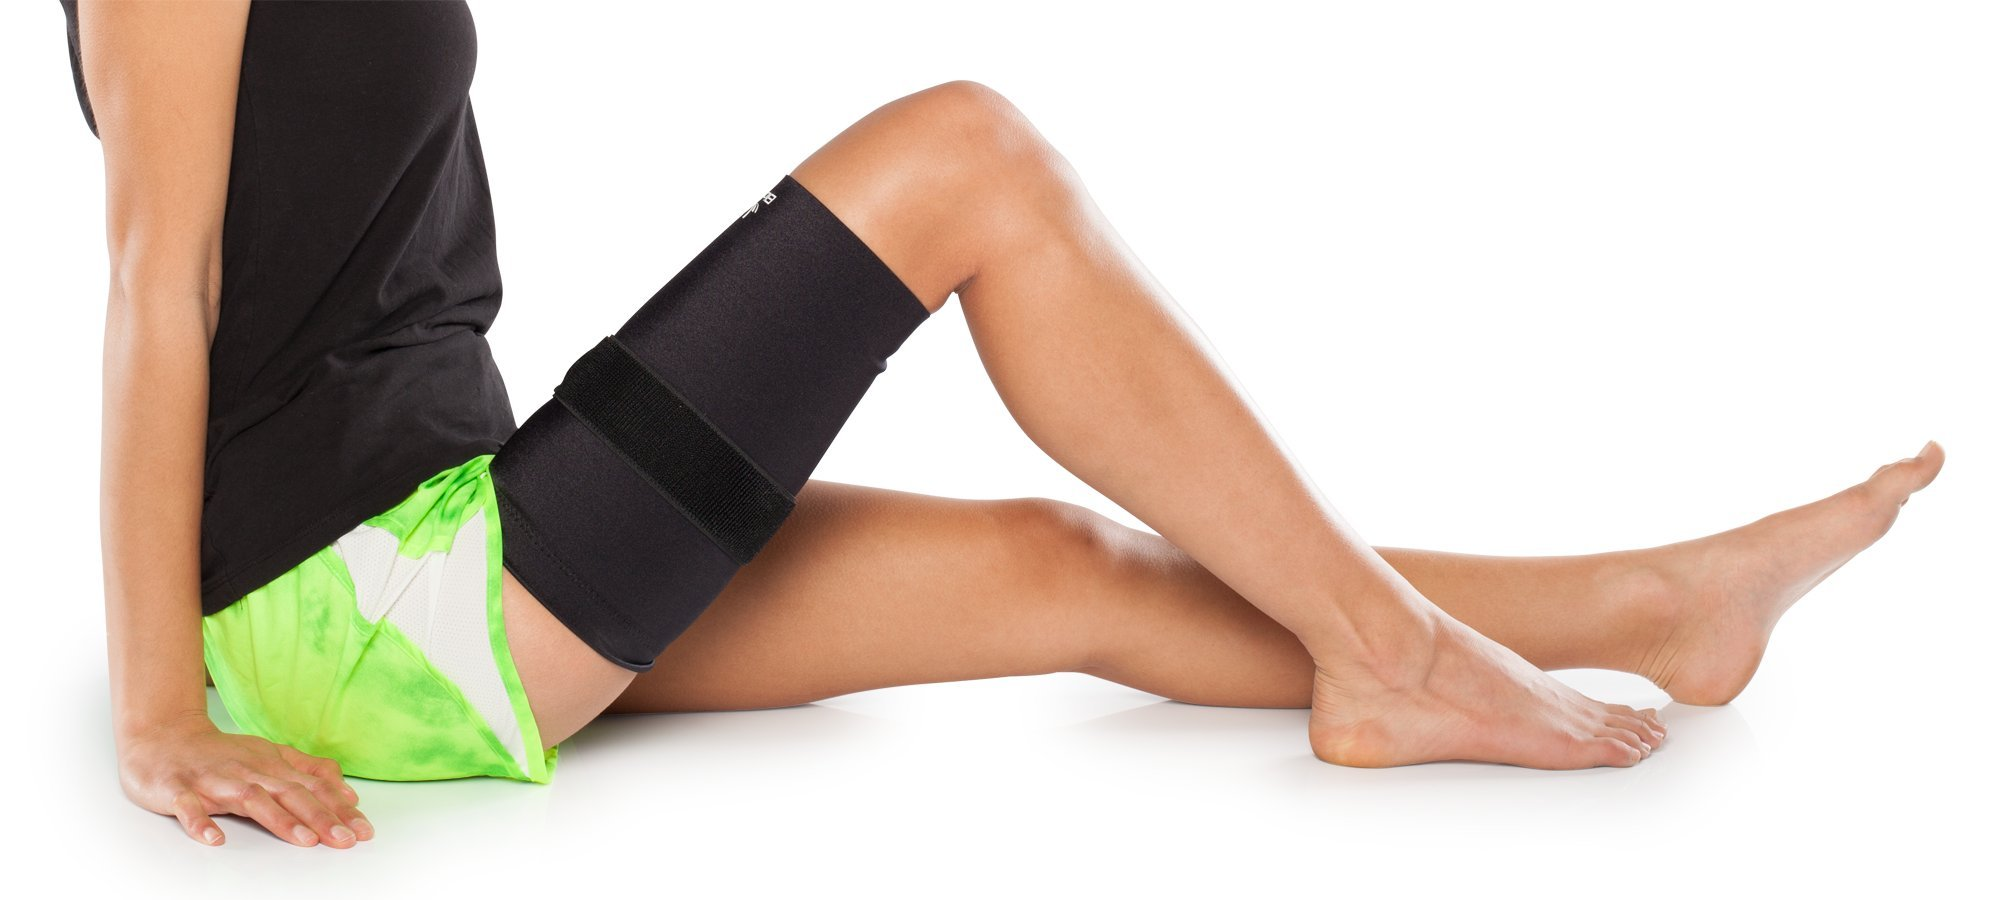 Medical Grade Compression Sleeve with Additional, Targeted Compression Cinch Strap to Relieve Pain from Quad and Hamstring Strains and Injuries - Thigh Skin with Cinch by BioSkin (Medium)